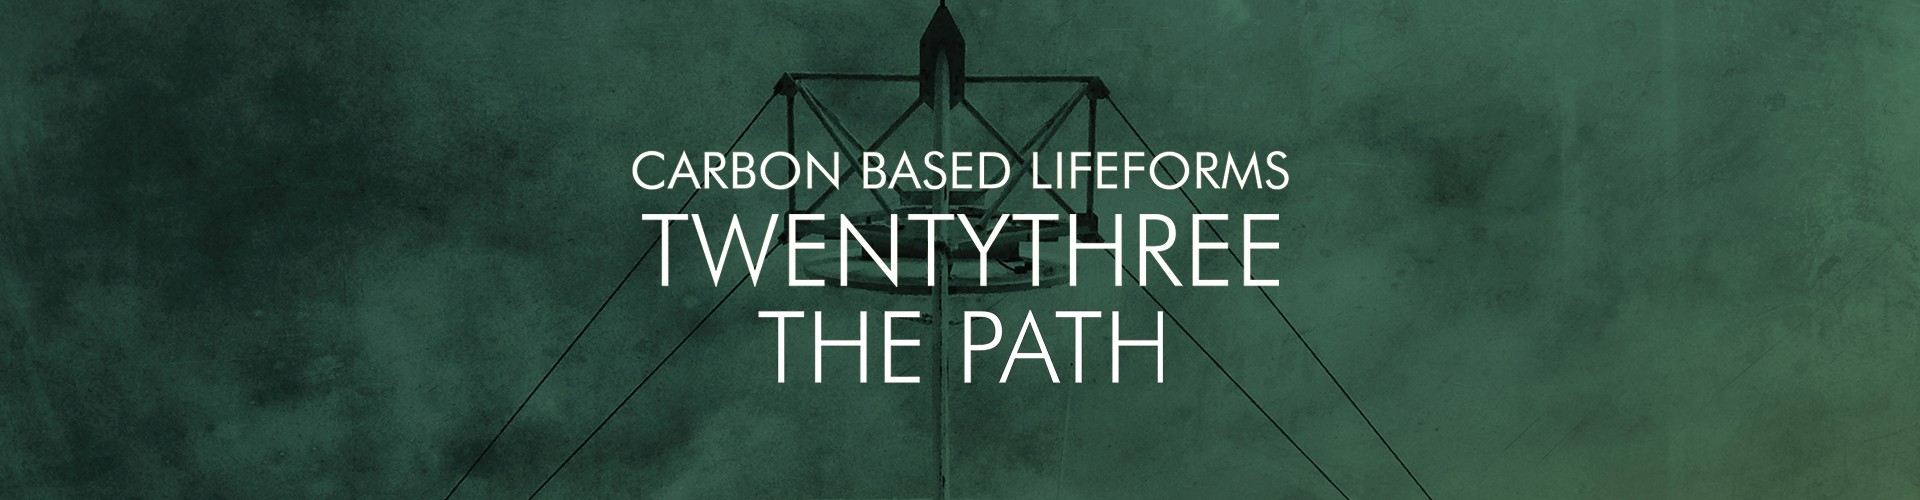 "Carbon Based Lifeforms ""Twentythree"" ""The Path"""